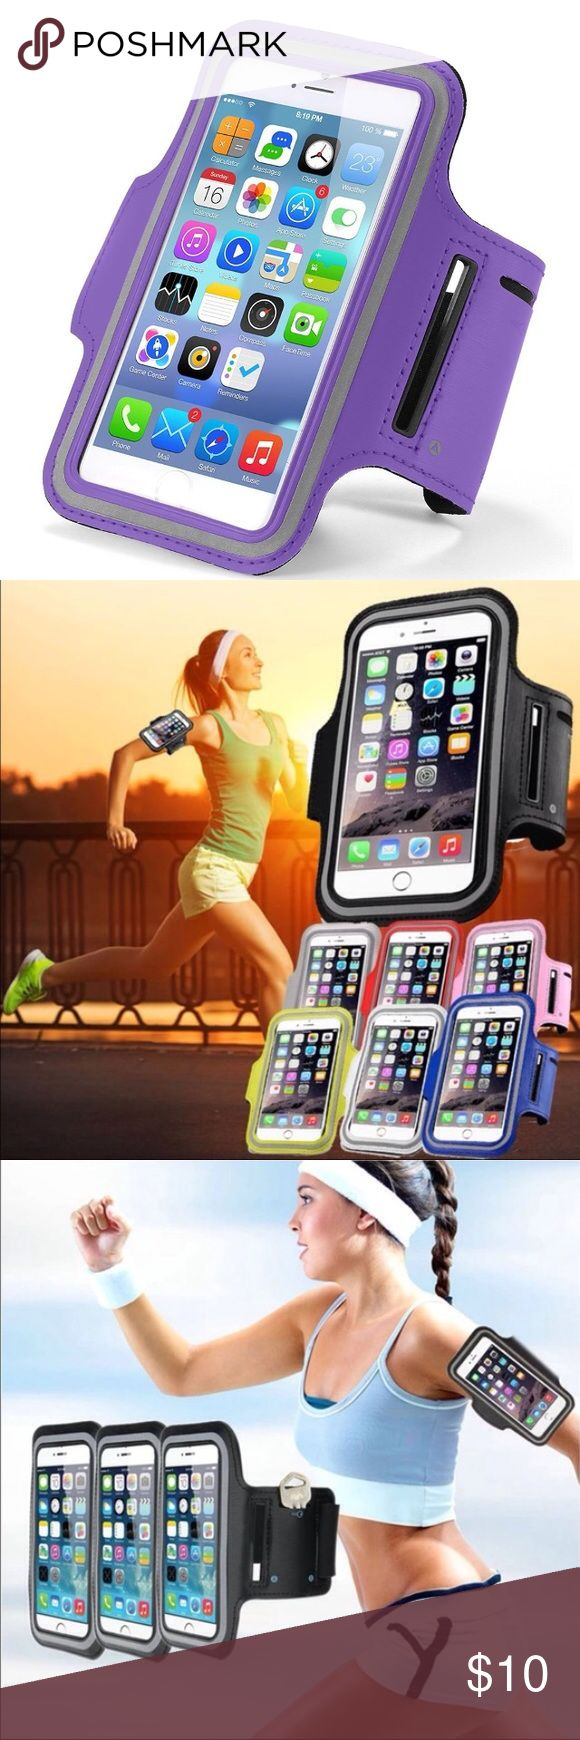 i7+/6+/6s+ High quality gym and sport armband case i7+/6+/6s+ High quality gym and sport armband case Listing is Durable water-proof, sweat-proof Sport and Gym Armband case for iPhone 7 Plus & 6 plus  & 6s Plus   This is unisex sport accessory for Women & Men indoor Gym and Outdoor sport smart phone Case holder.  High quality Nylon Bag Cover Holder specially for iPhone 7 Plus and 6 Plus and 6s Plus  Fashion color Designed for your convenience. Color: Purple  Order will ship within 24 hours…